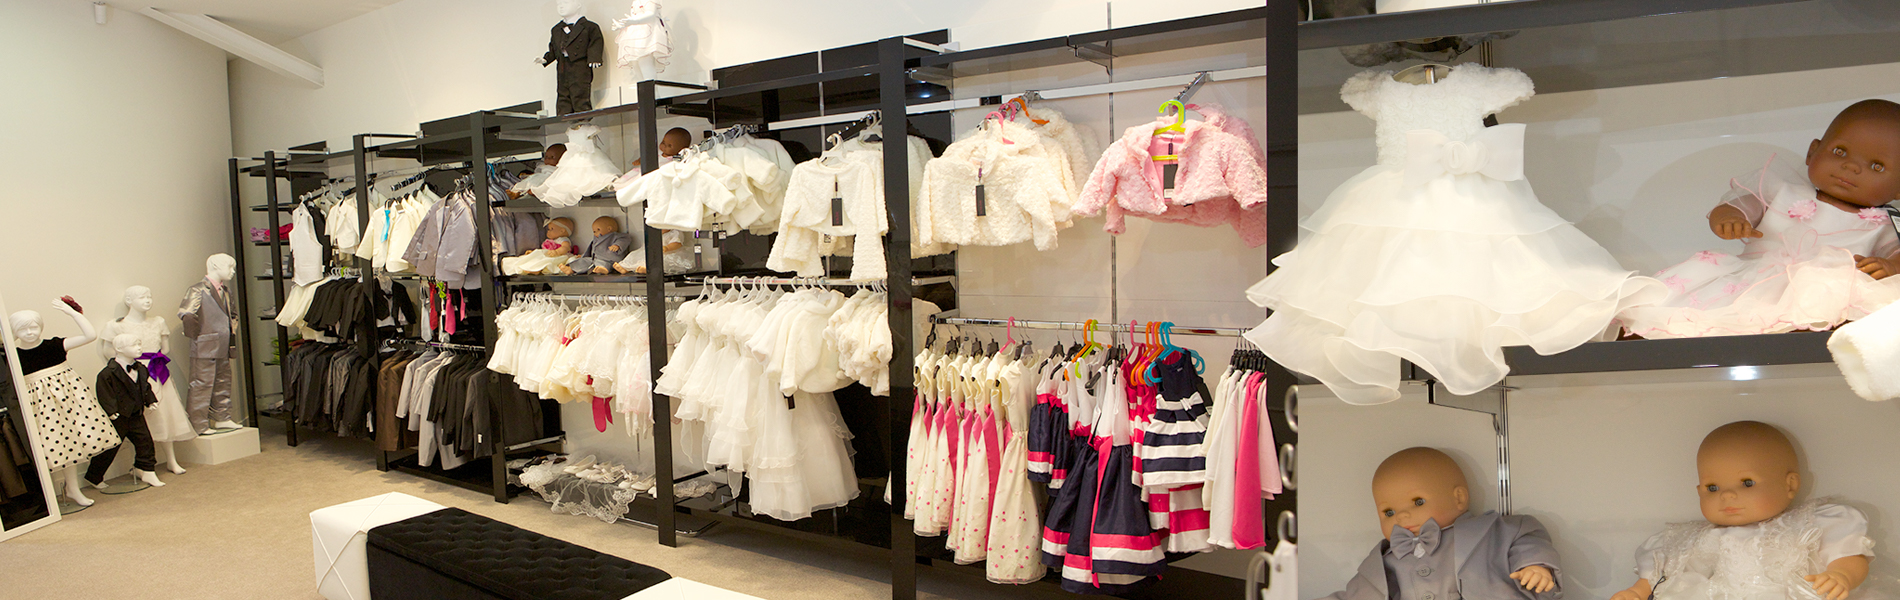 sublimefrance-showroom-herblay-espace-enfant